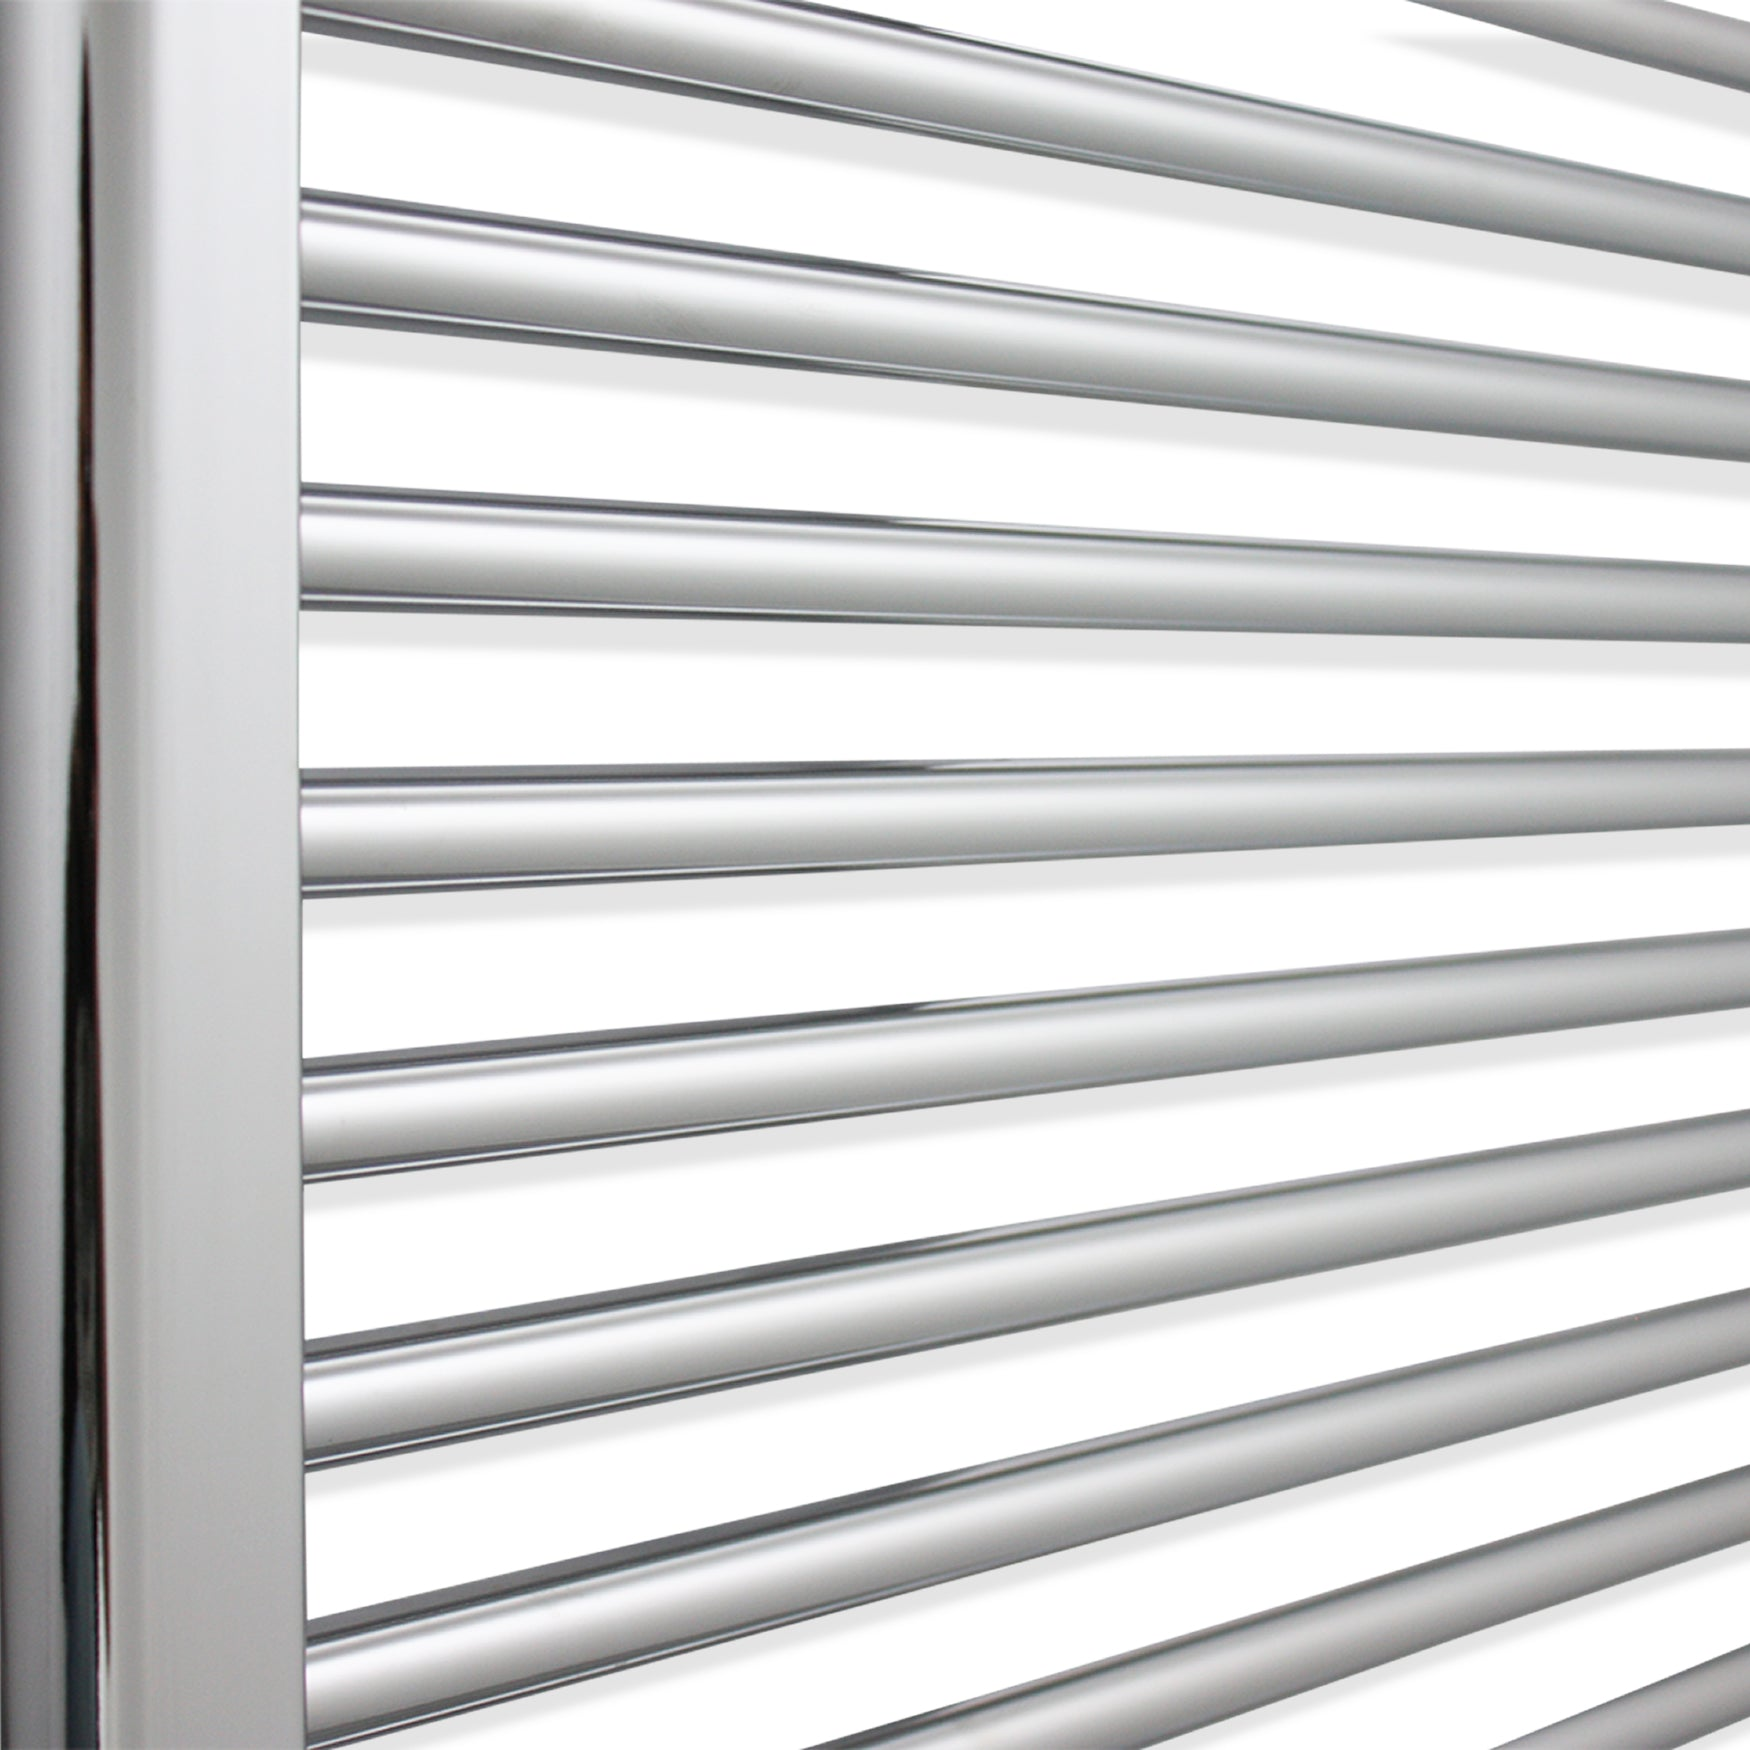 350mm Wide 1800mm High Flat Chrome Heated Towel Rail Radiator